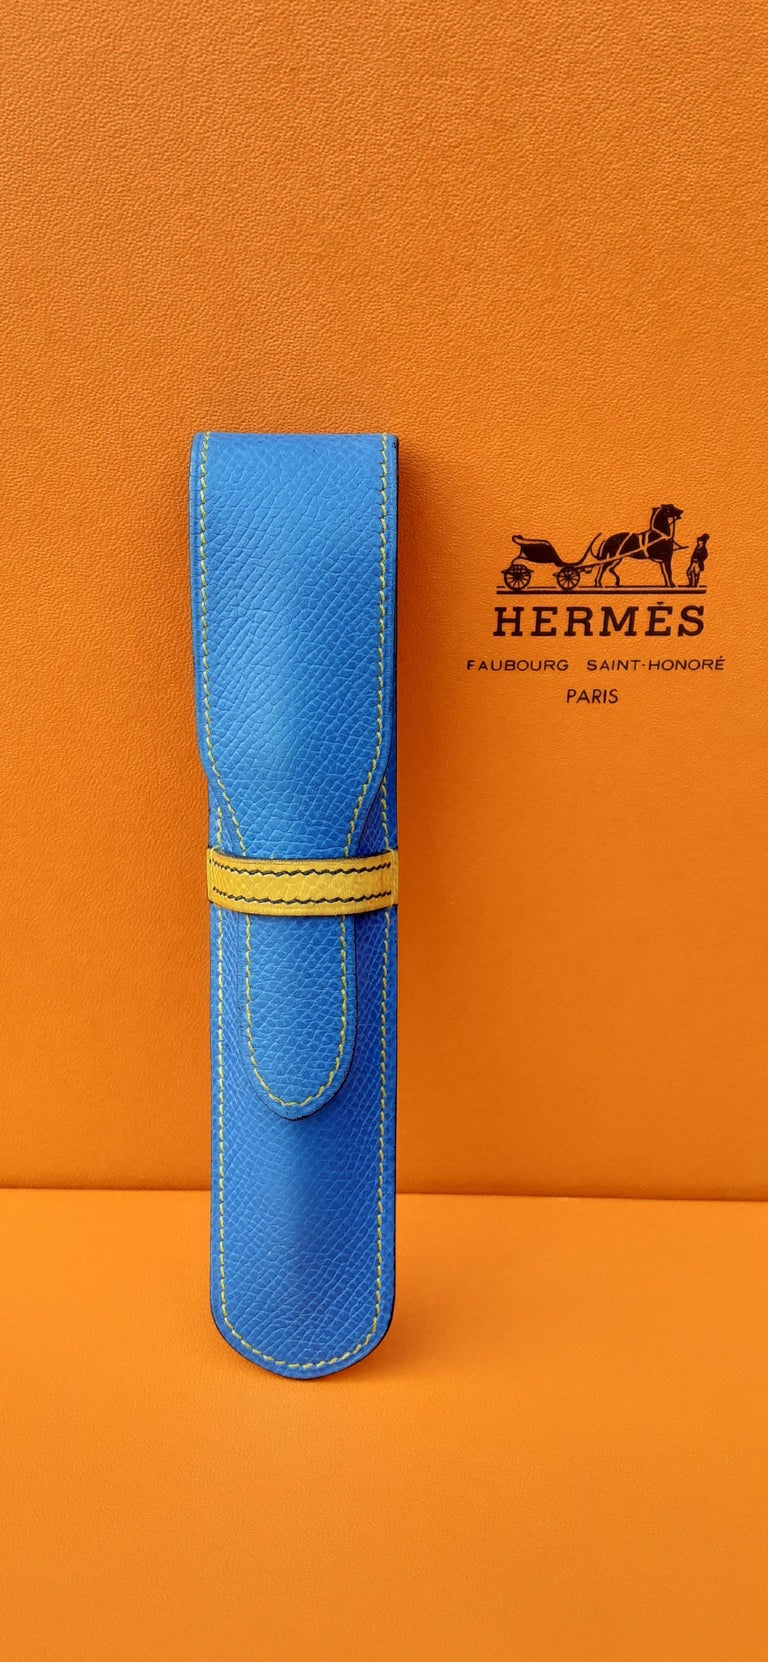 Beautiful Authentic Hermès Pen Case  Made in France  Stamp T in circle (1990)  Made of Courchevel (ex Epsom) Leather  Colorway: Blue, Yellow